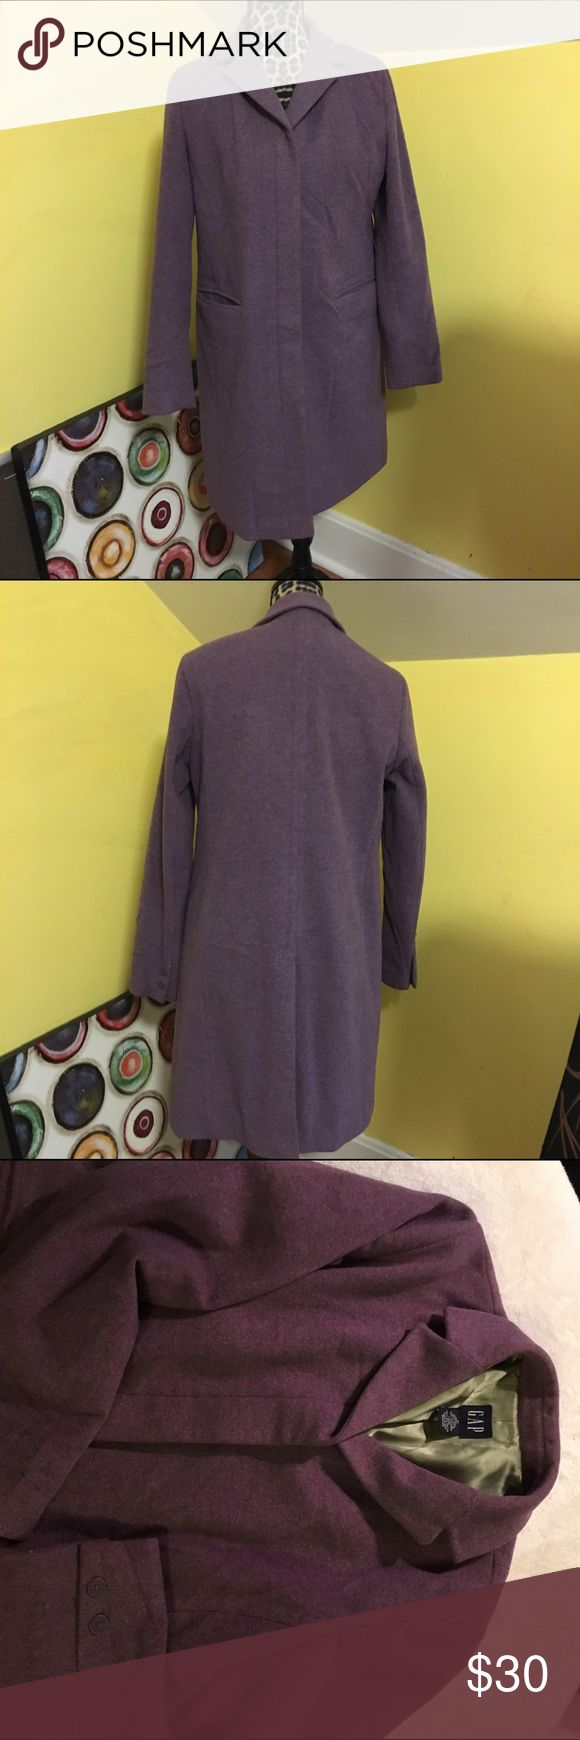 GAP coat GAP coat, size medium. Purple with lime green lining. GAP Jackets & Coats Pea Coats